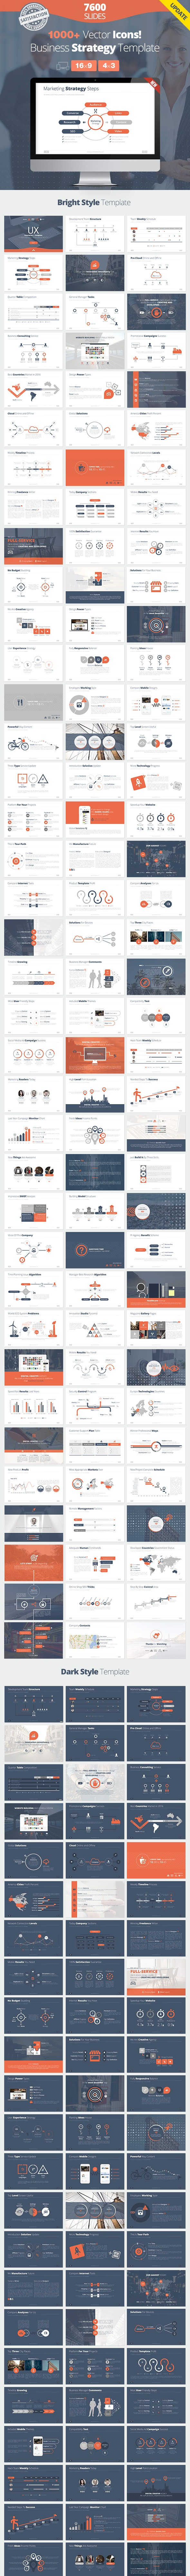 Business Strategy Google Slides Template - Google Slides Presentation Templates